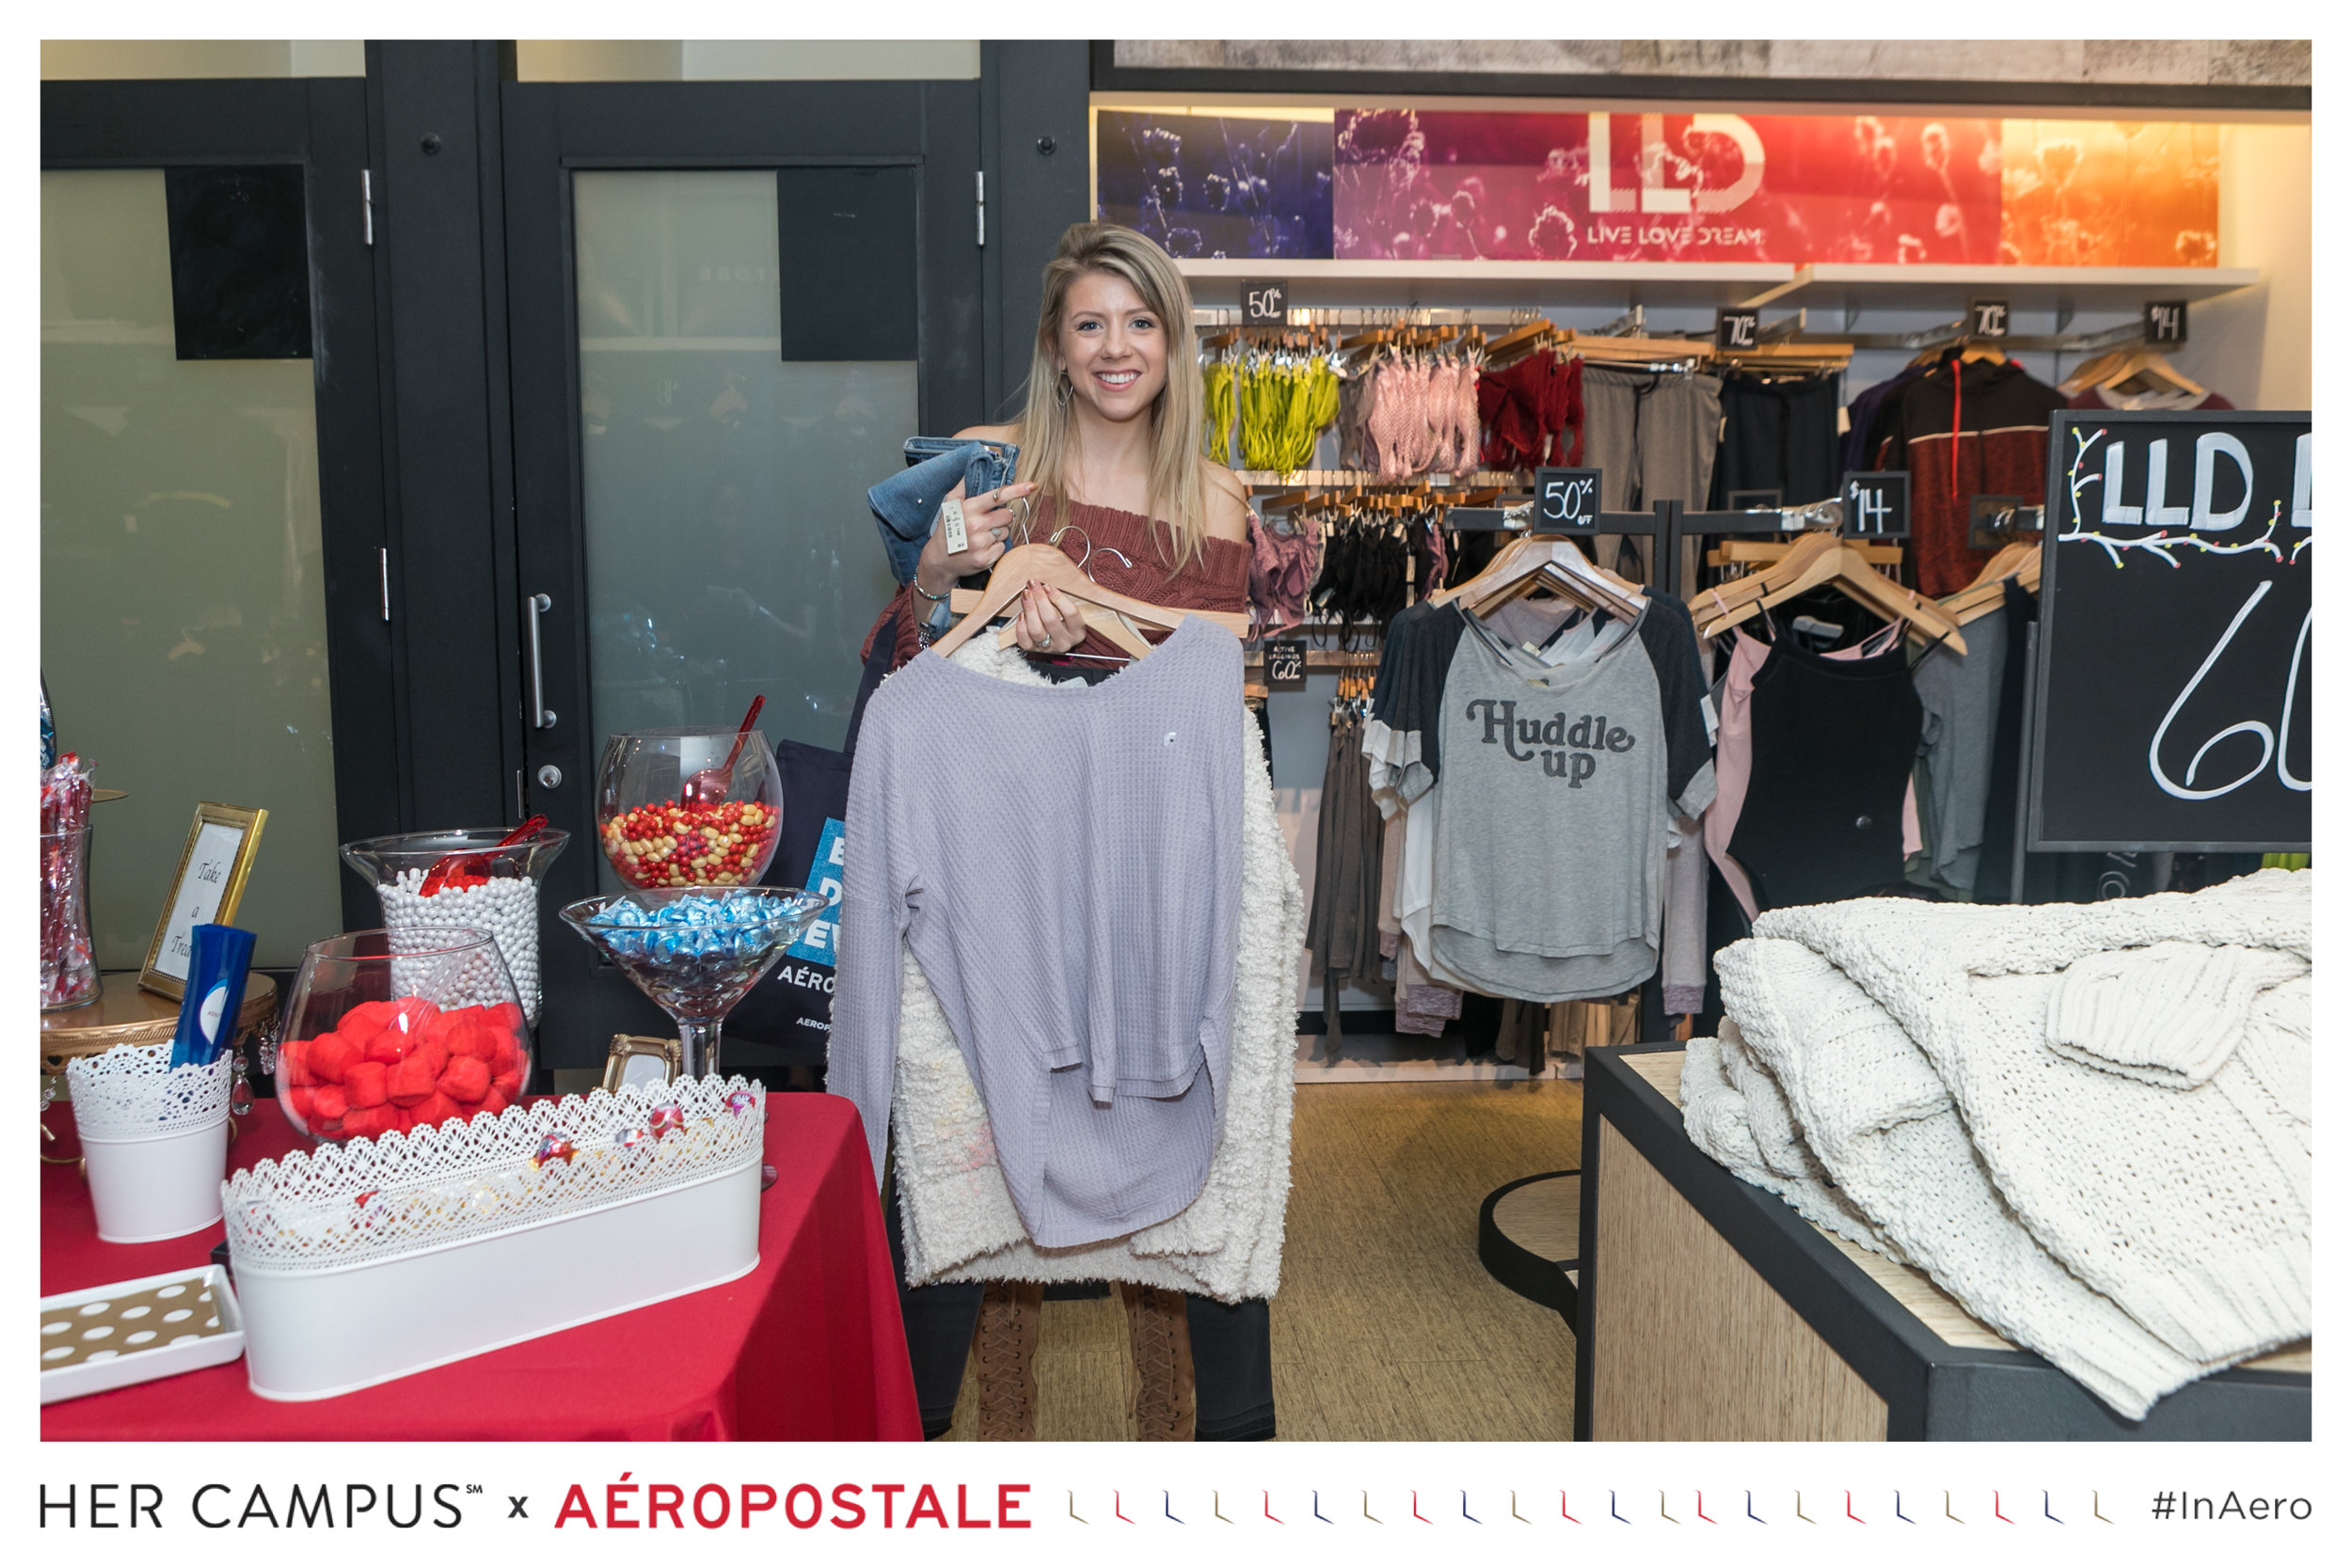 Her Campus x Aéropostale in-Store Shopping Experience Influencer - Blogger  (2).jpg